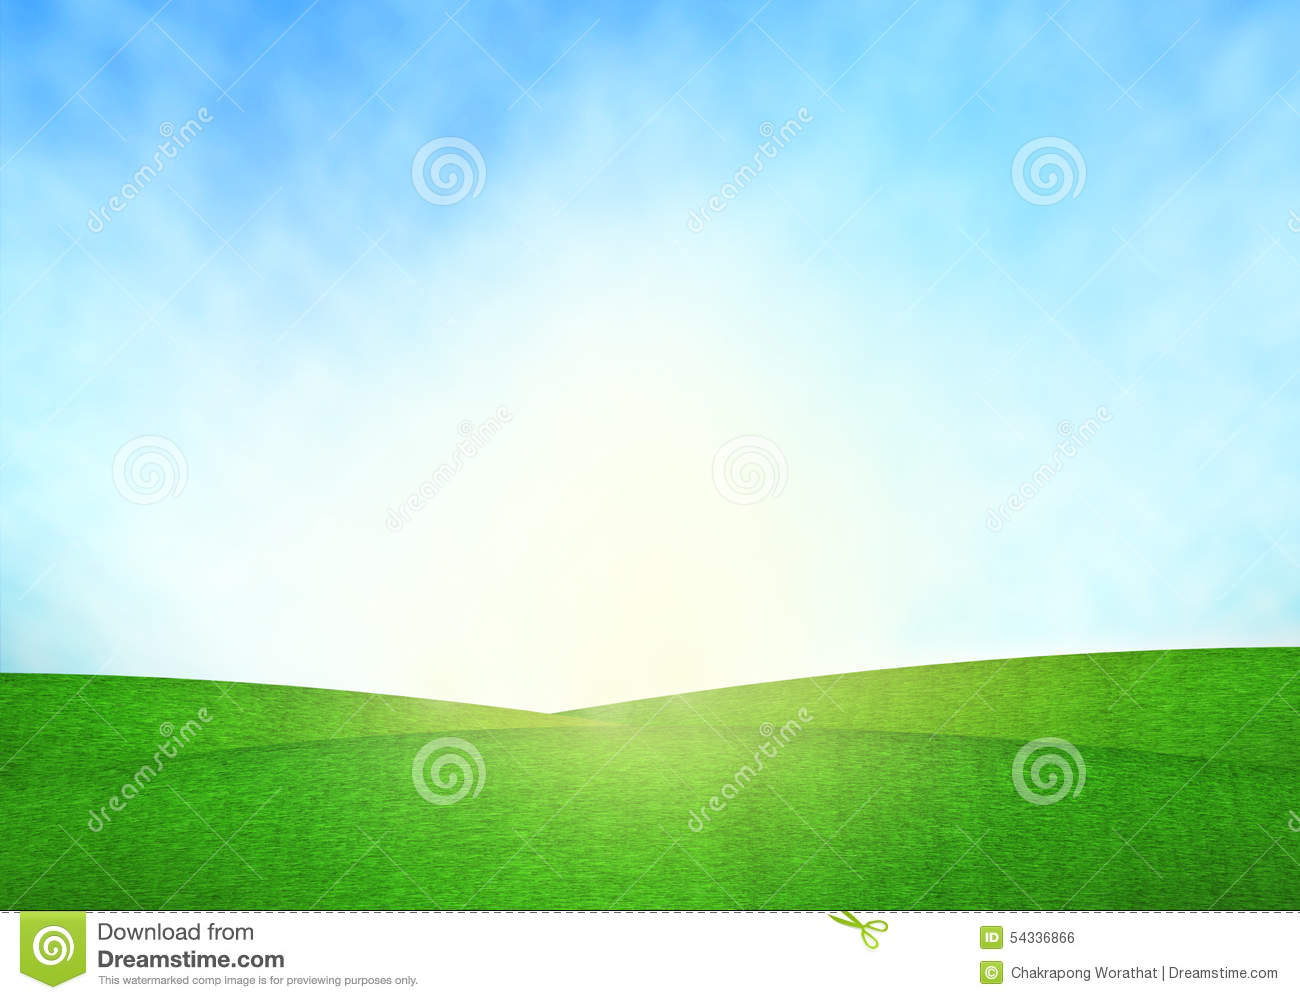 Royalty-Free Illustration. Download Green Field Blue Sky And Lighting ...  sc 1 st  Dreamstime.com & Green Field Blue Sky And Lighting Flare On Grass. Stock ... azcodes.com